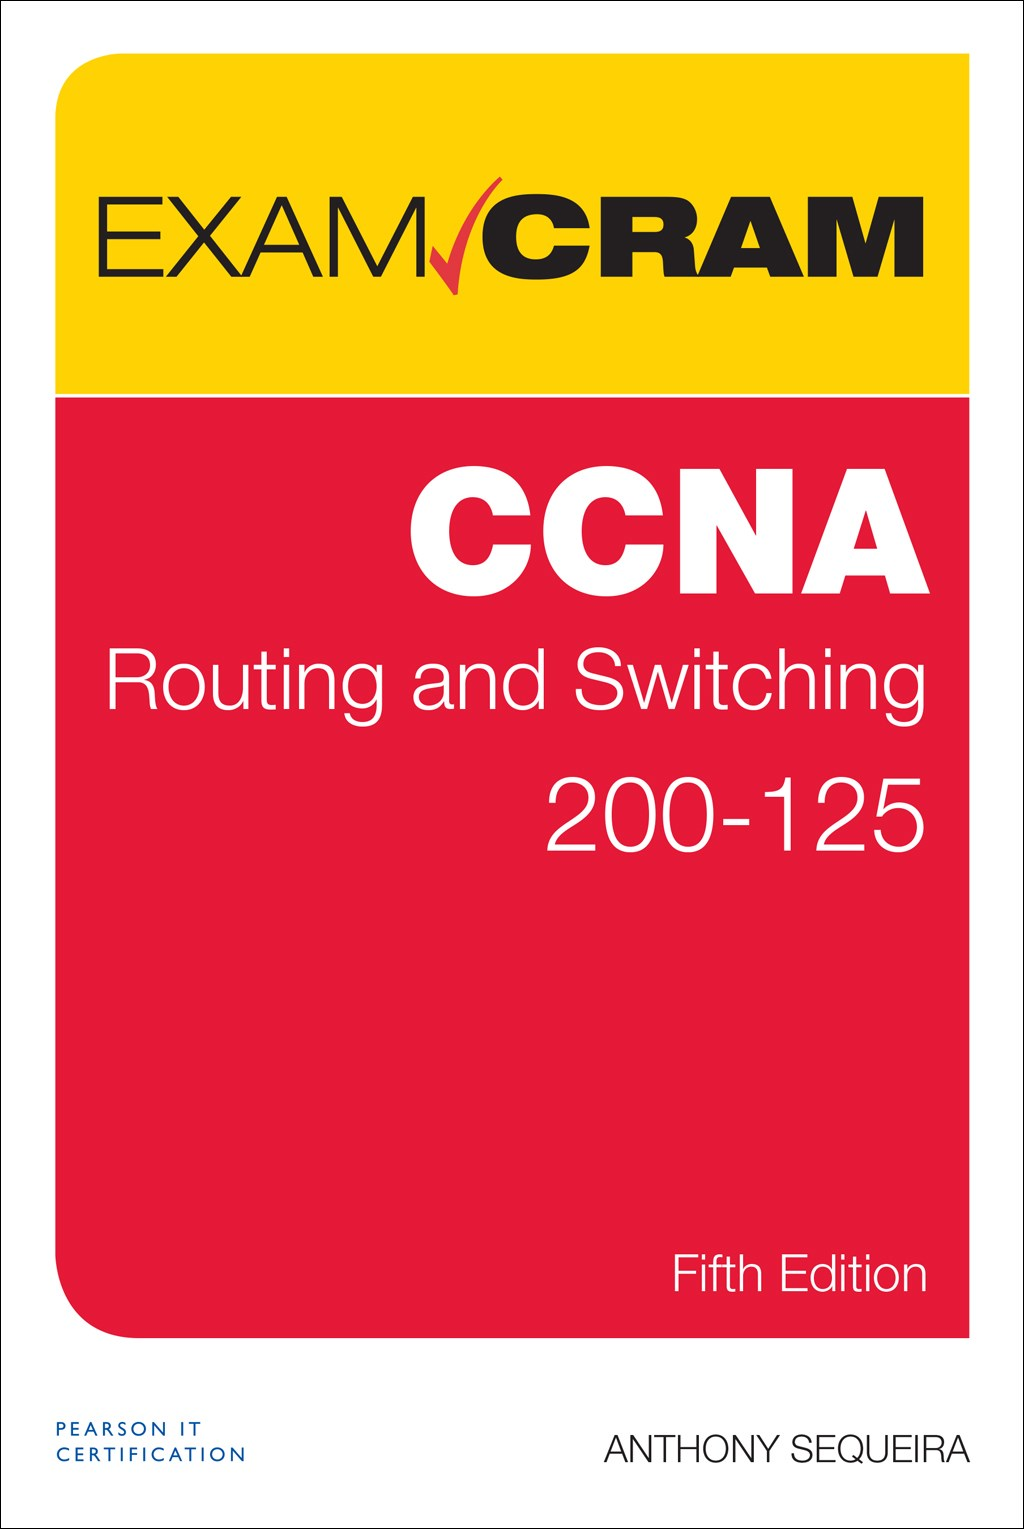 CCNA Routing and Switching 200-125 Exam Cram, 5th Edition